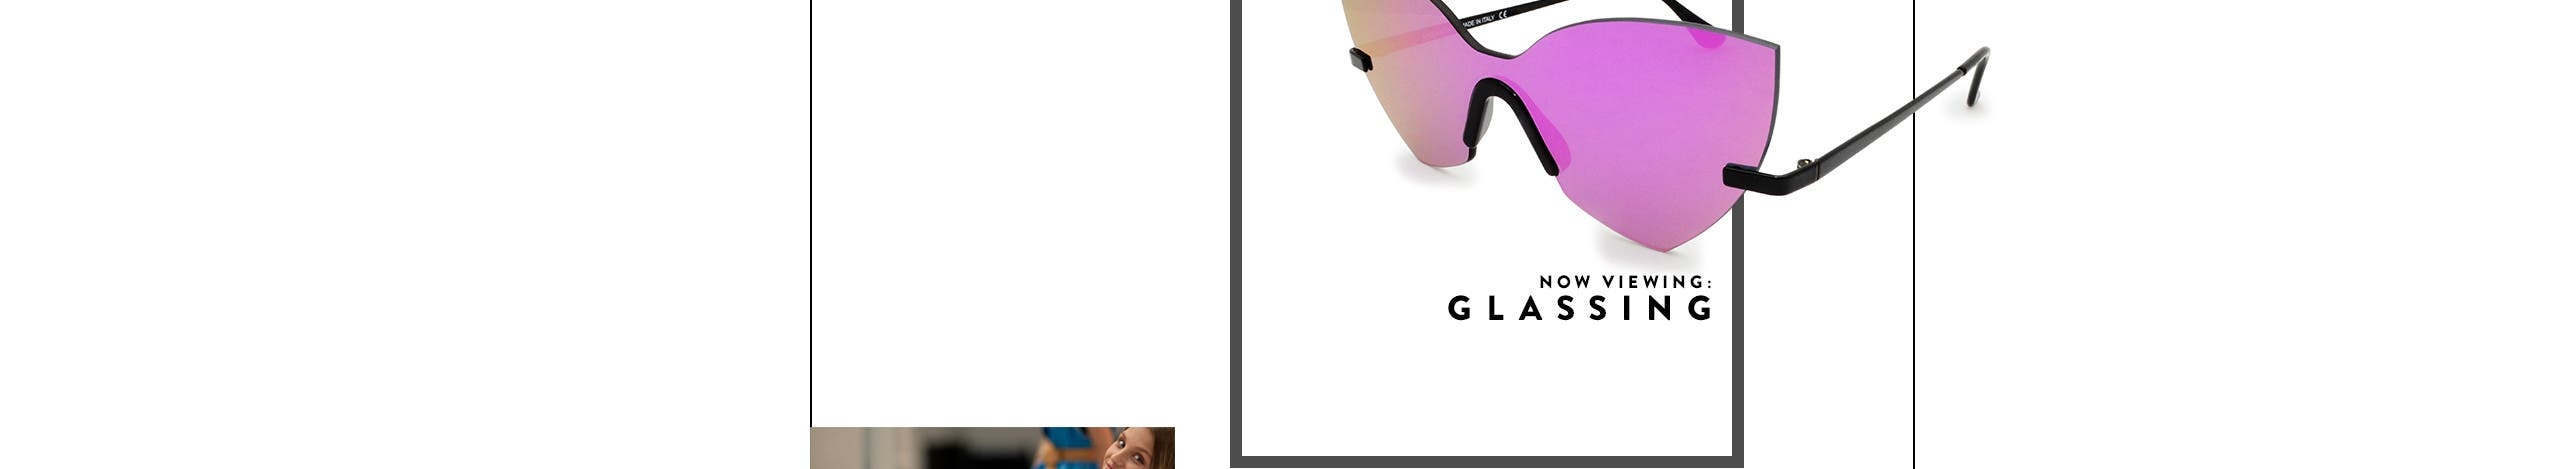 Now viewing: Glassing sunglasses and glasses.